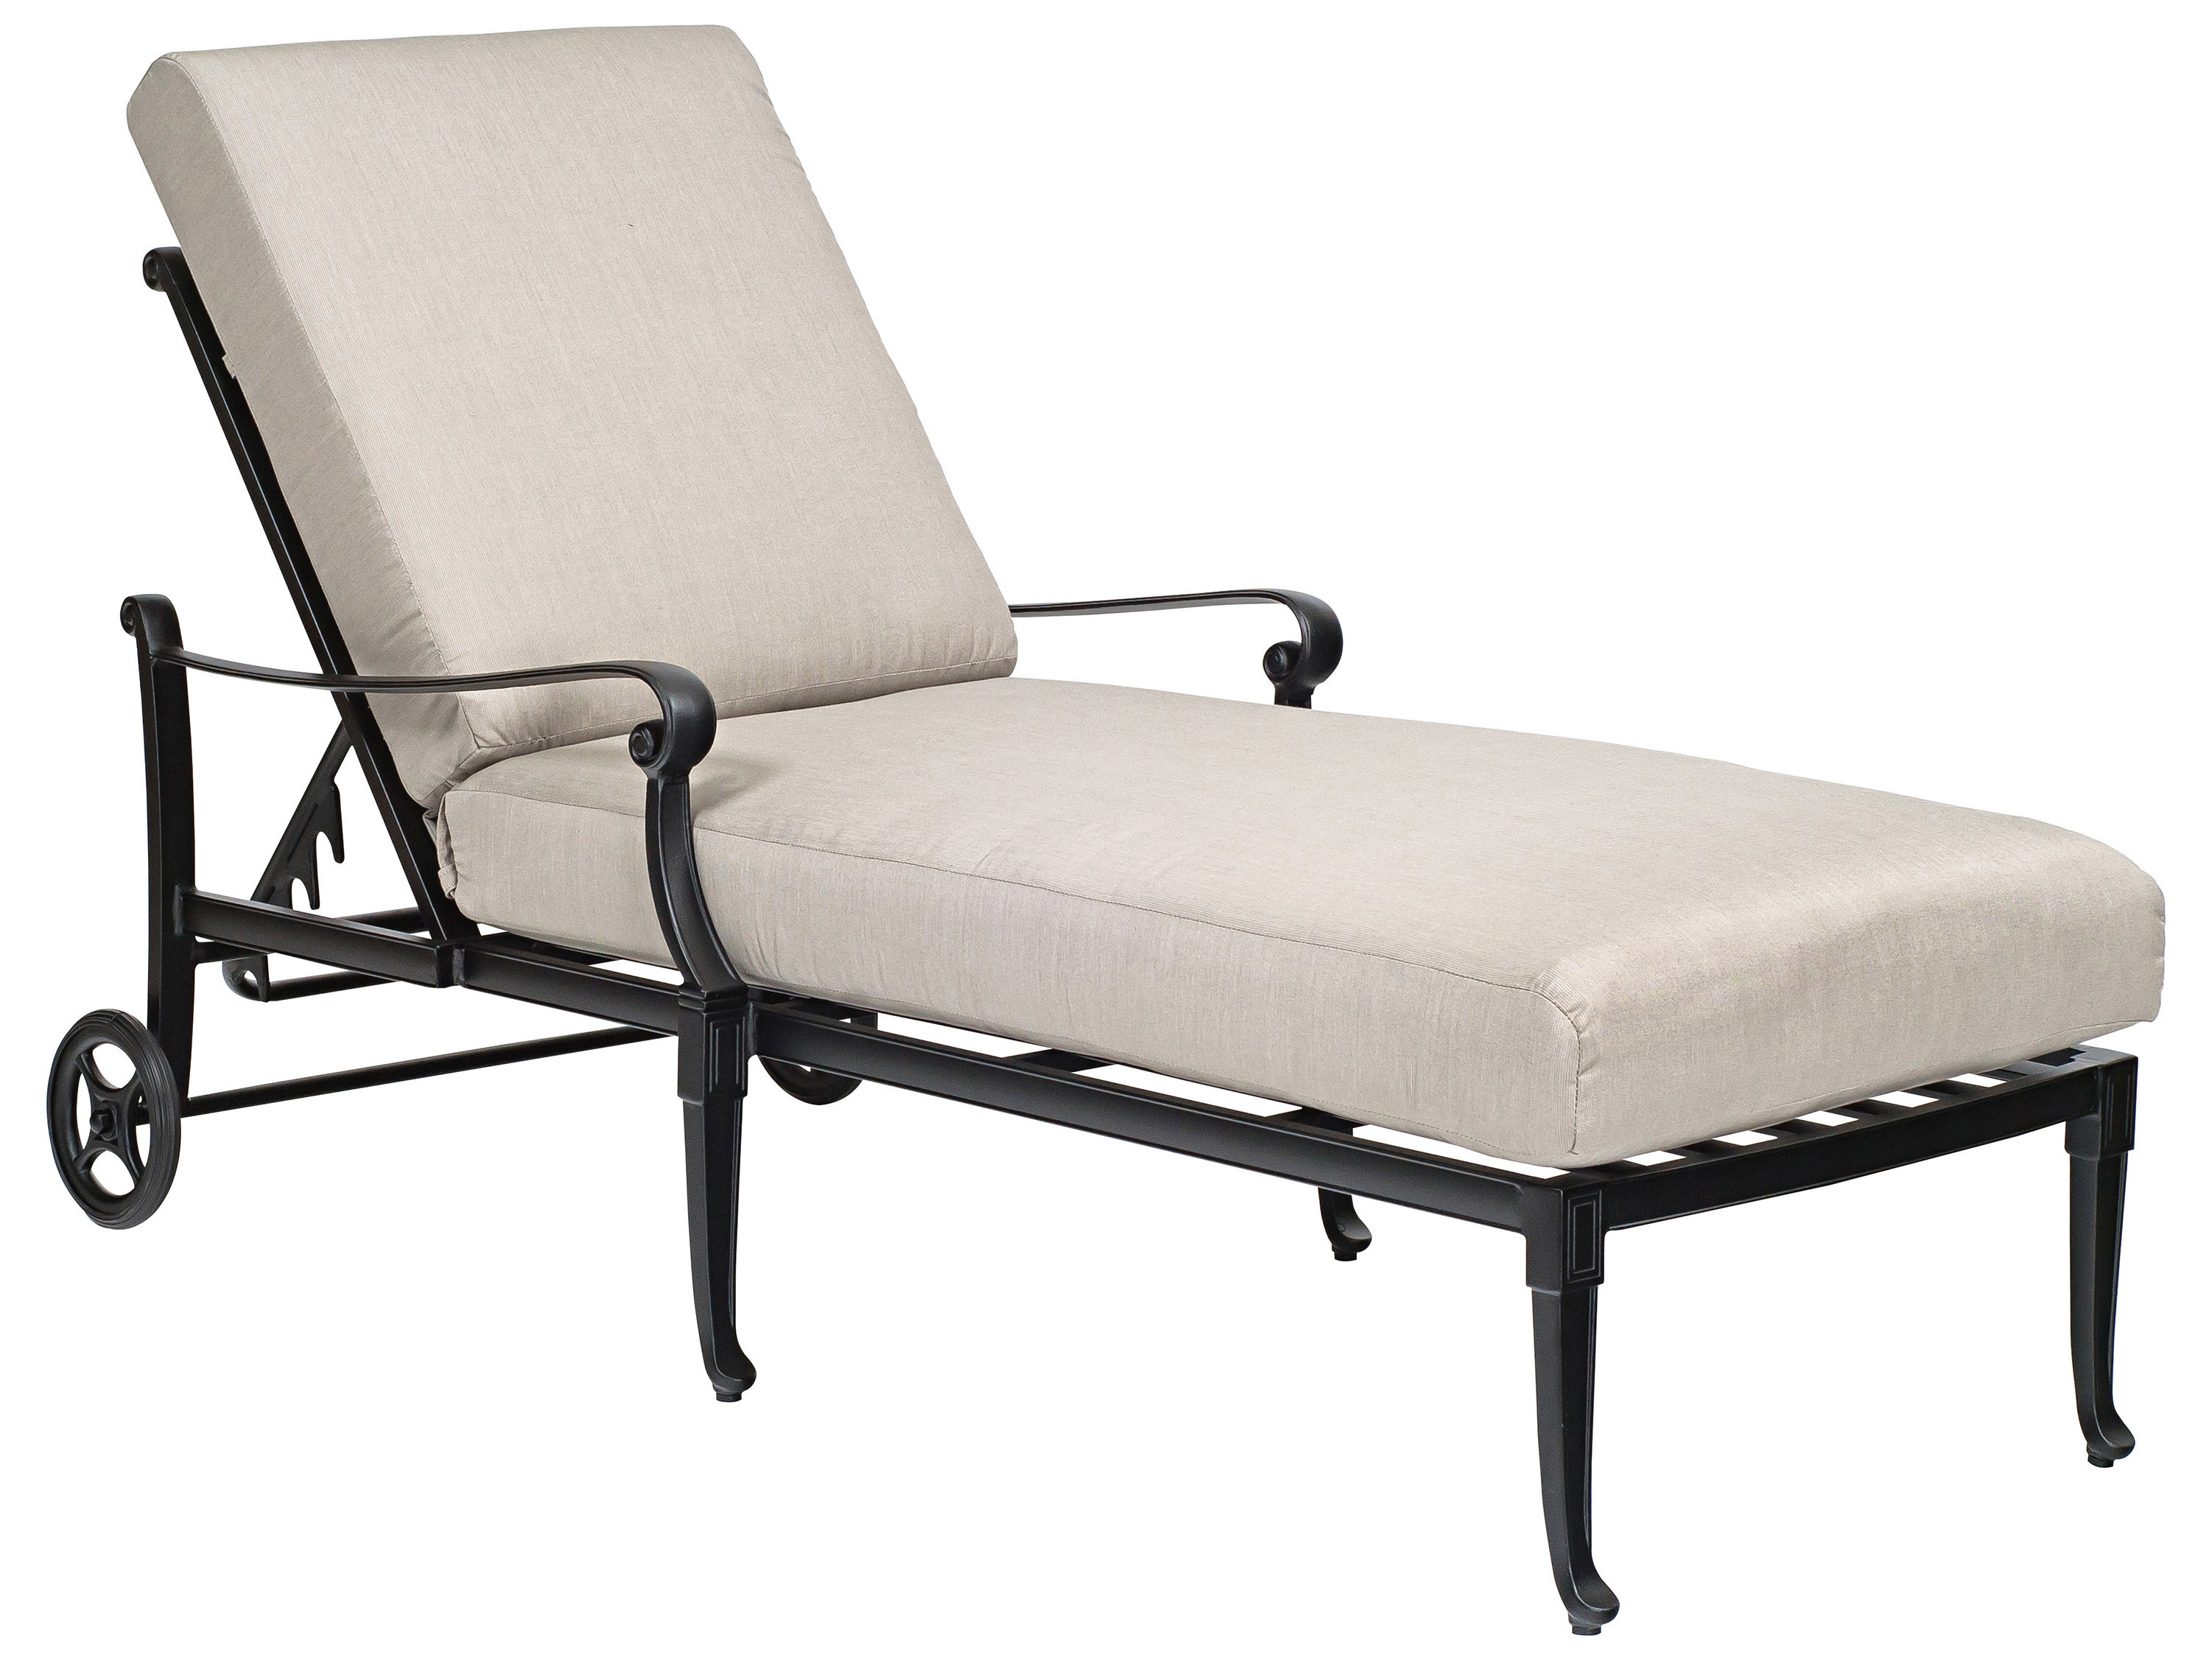 Woodard Wiltshire Chaise Lounge Replacement Cushions ...